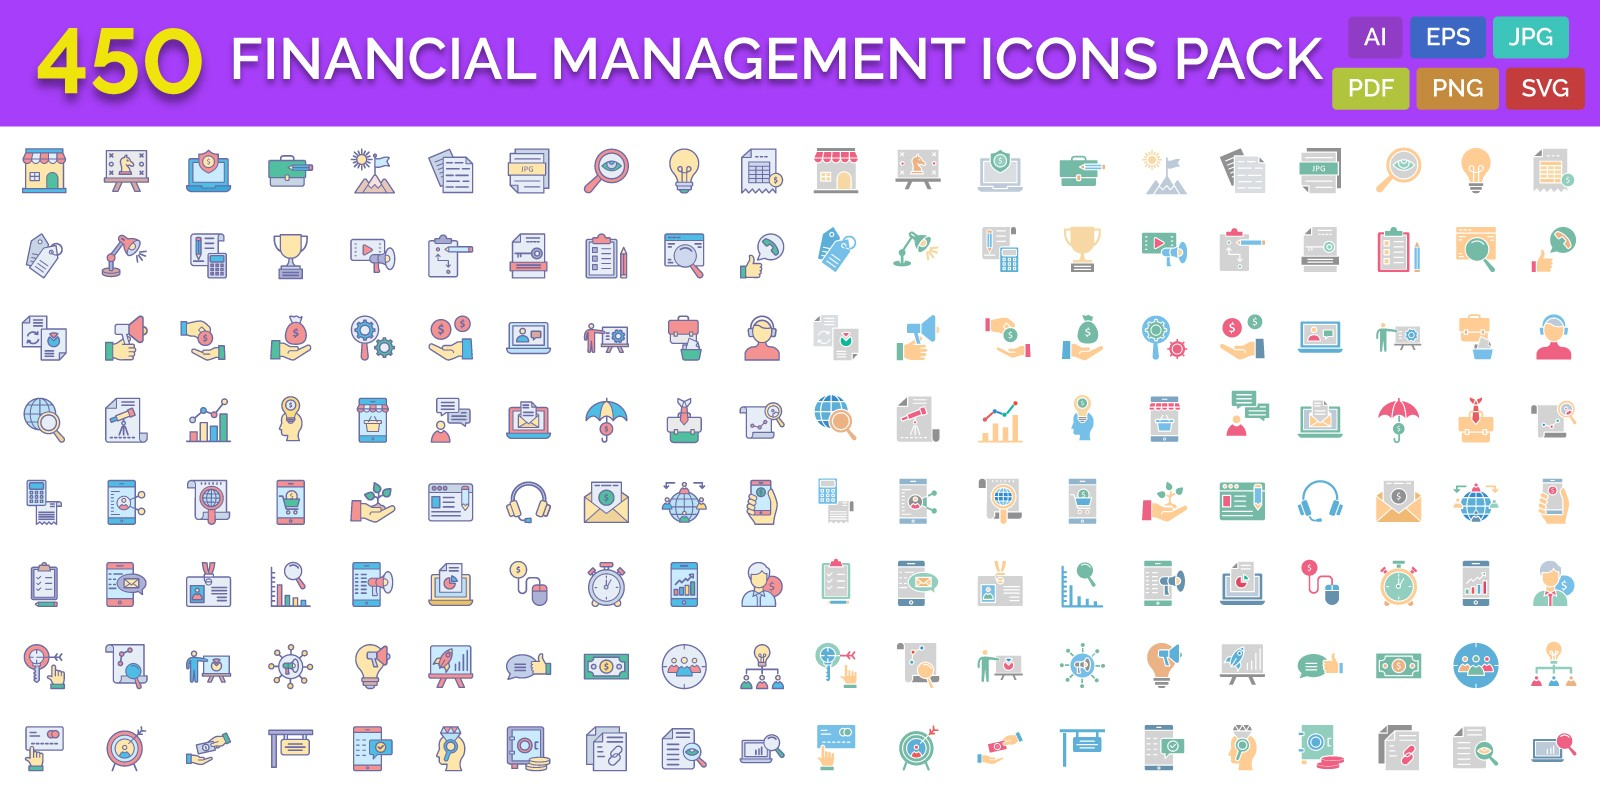 450 Financial Management Vector Icons Pack